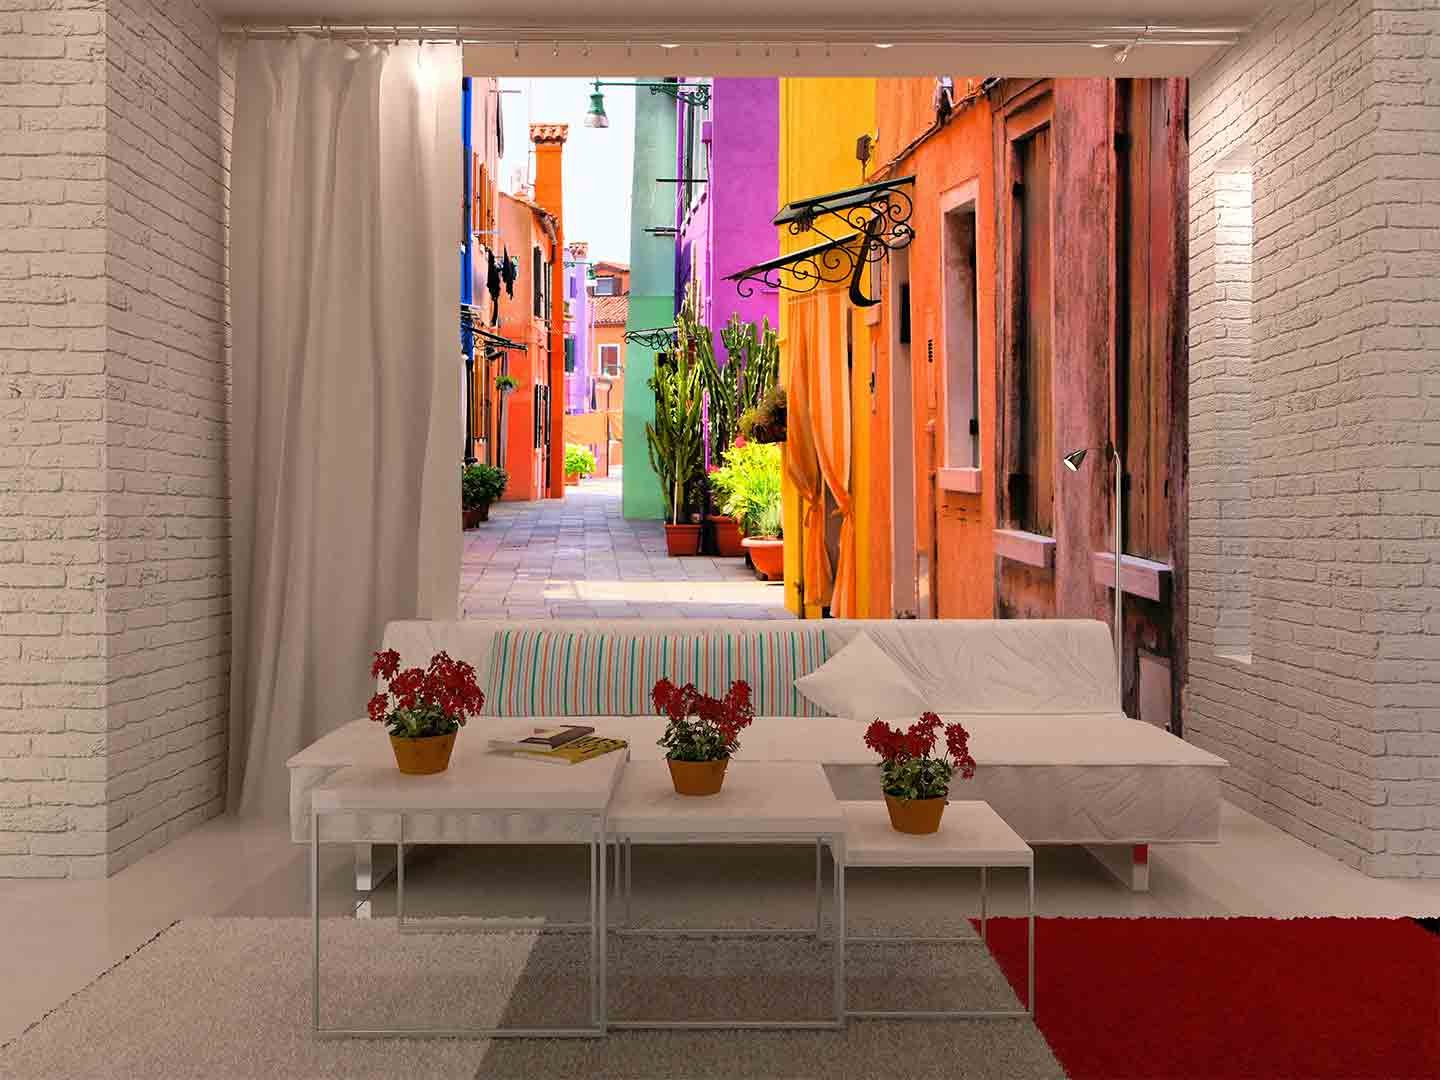 wall26 - Colorful Street in Burano, near Venice, Italy - Removable Wall  Mural | Self-adhesive Large Wallpaper - 100x144 inches